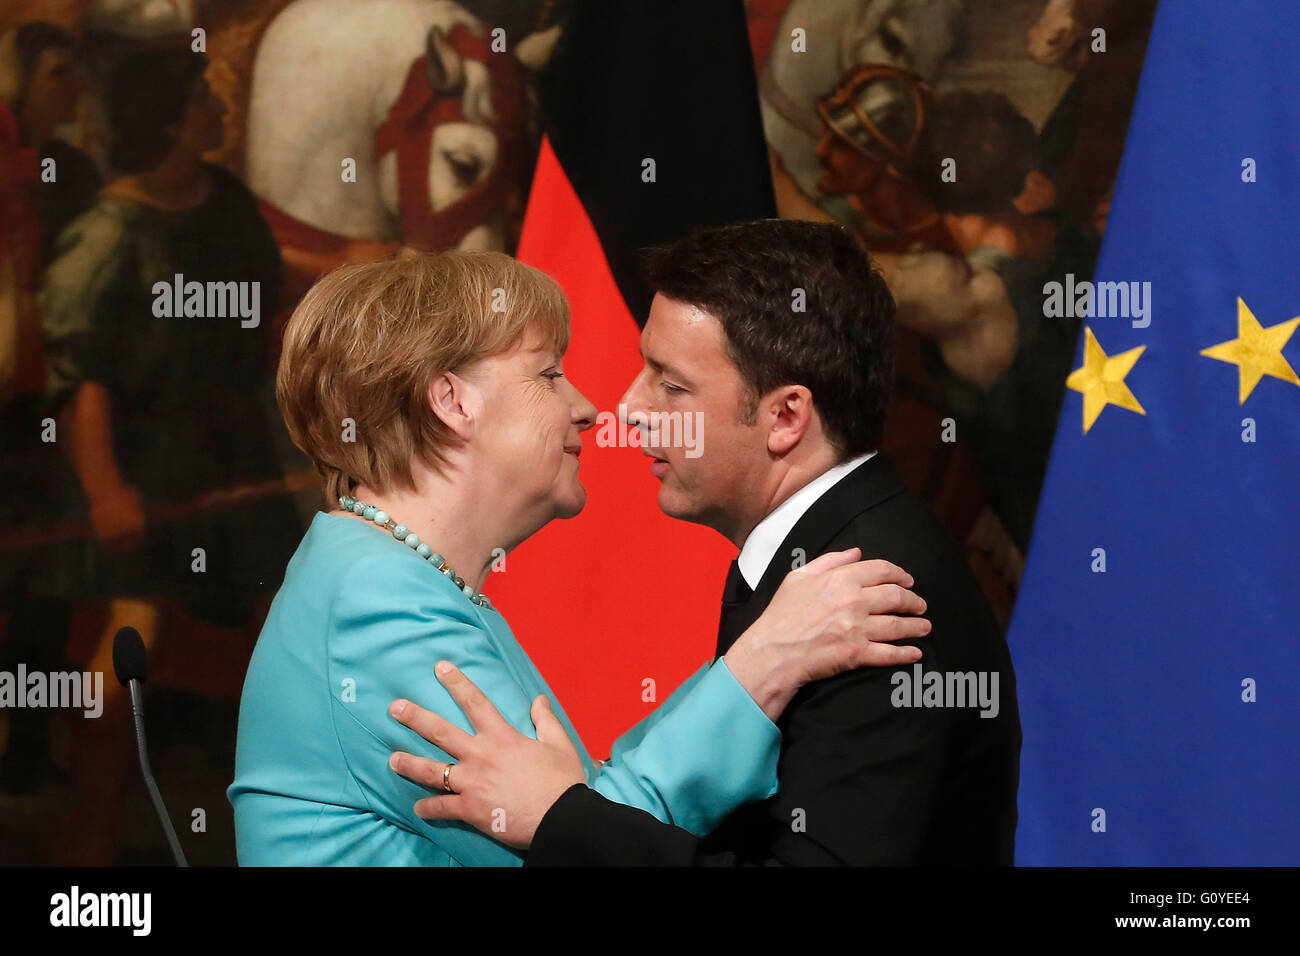 Rome, Italy. 5th May, 2016. Angela Merkel and Matteo Renzi Rome 5th May 2016. Italian premier meets the German Chancellor. - Stock Image